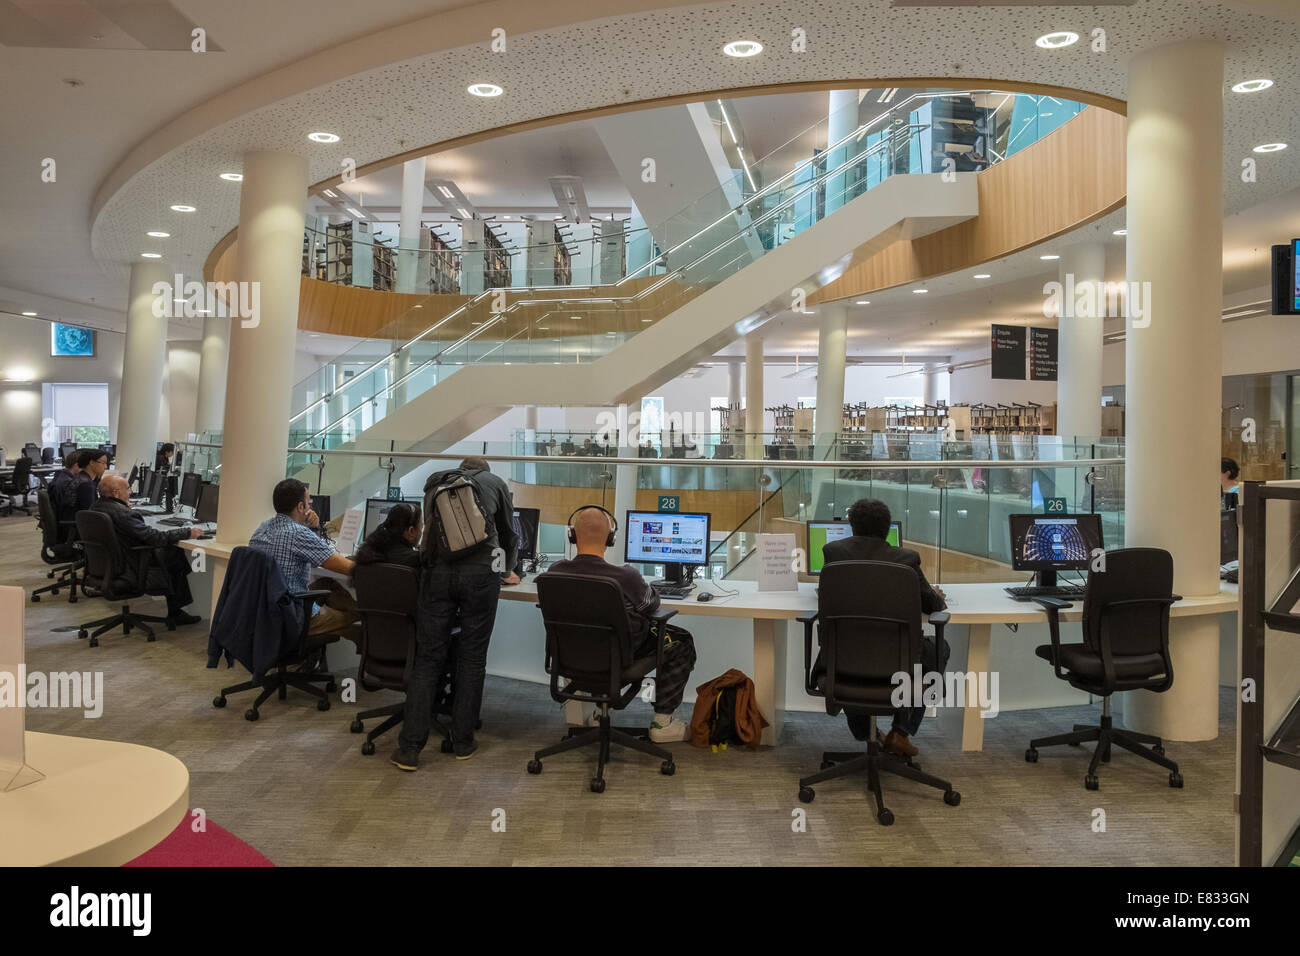 People using computers inside Liverpool Central Library, Liverpool, Merseyside, UK - Stock Image